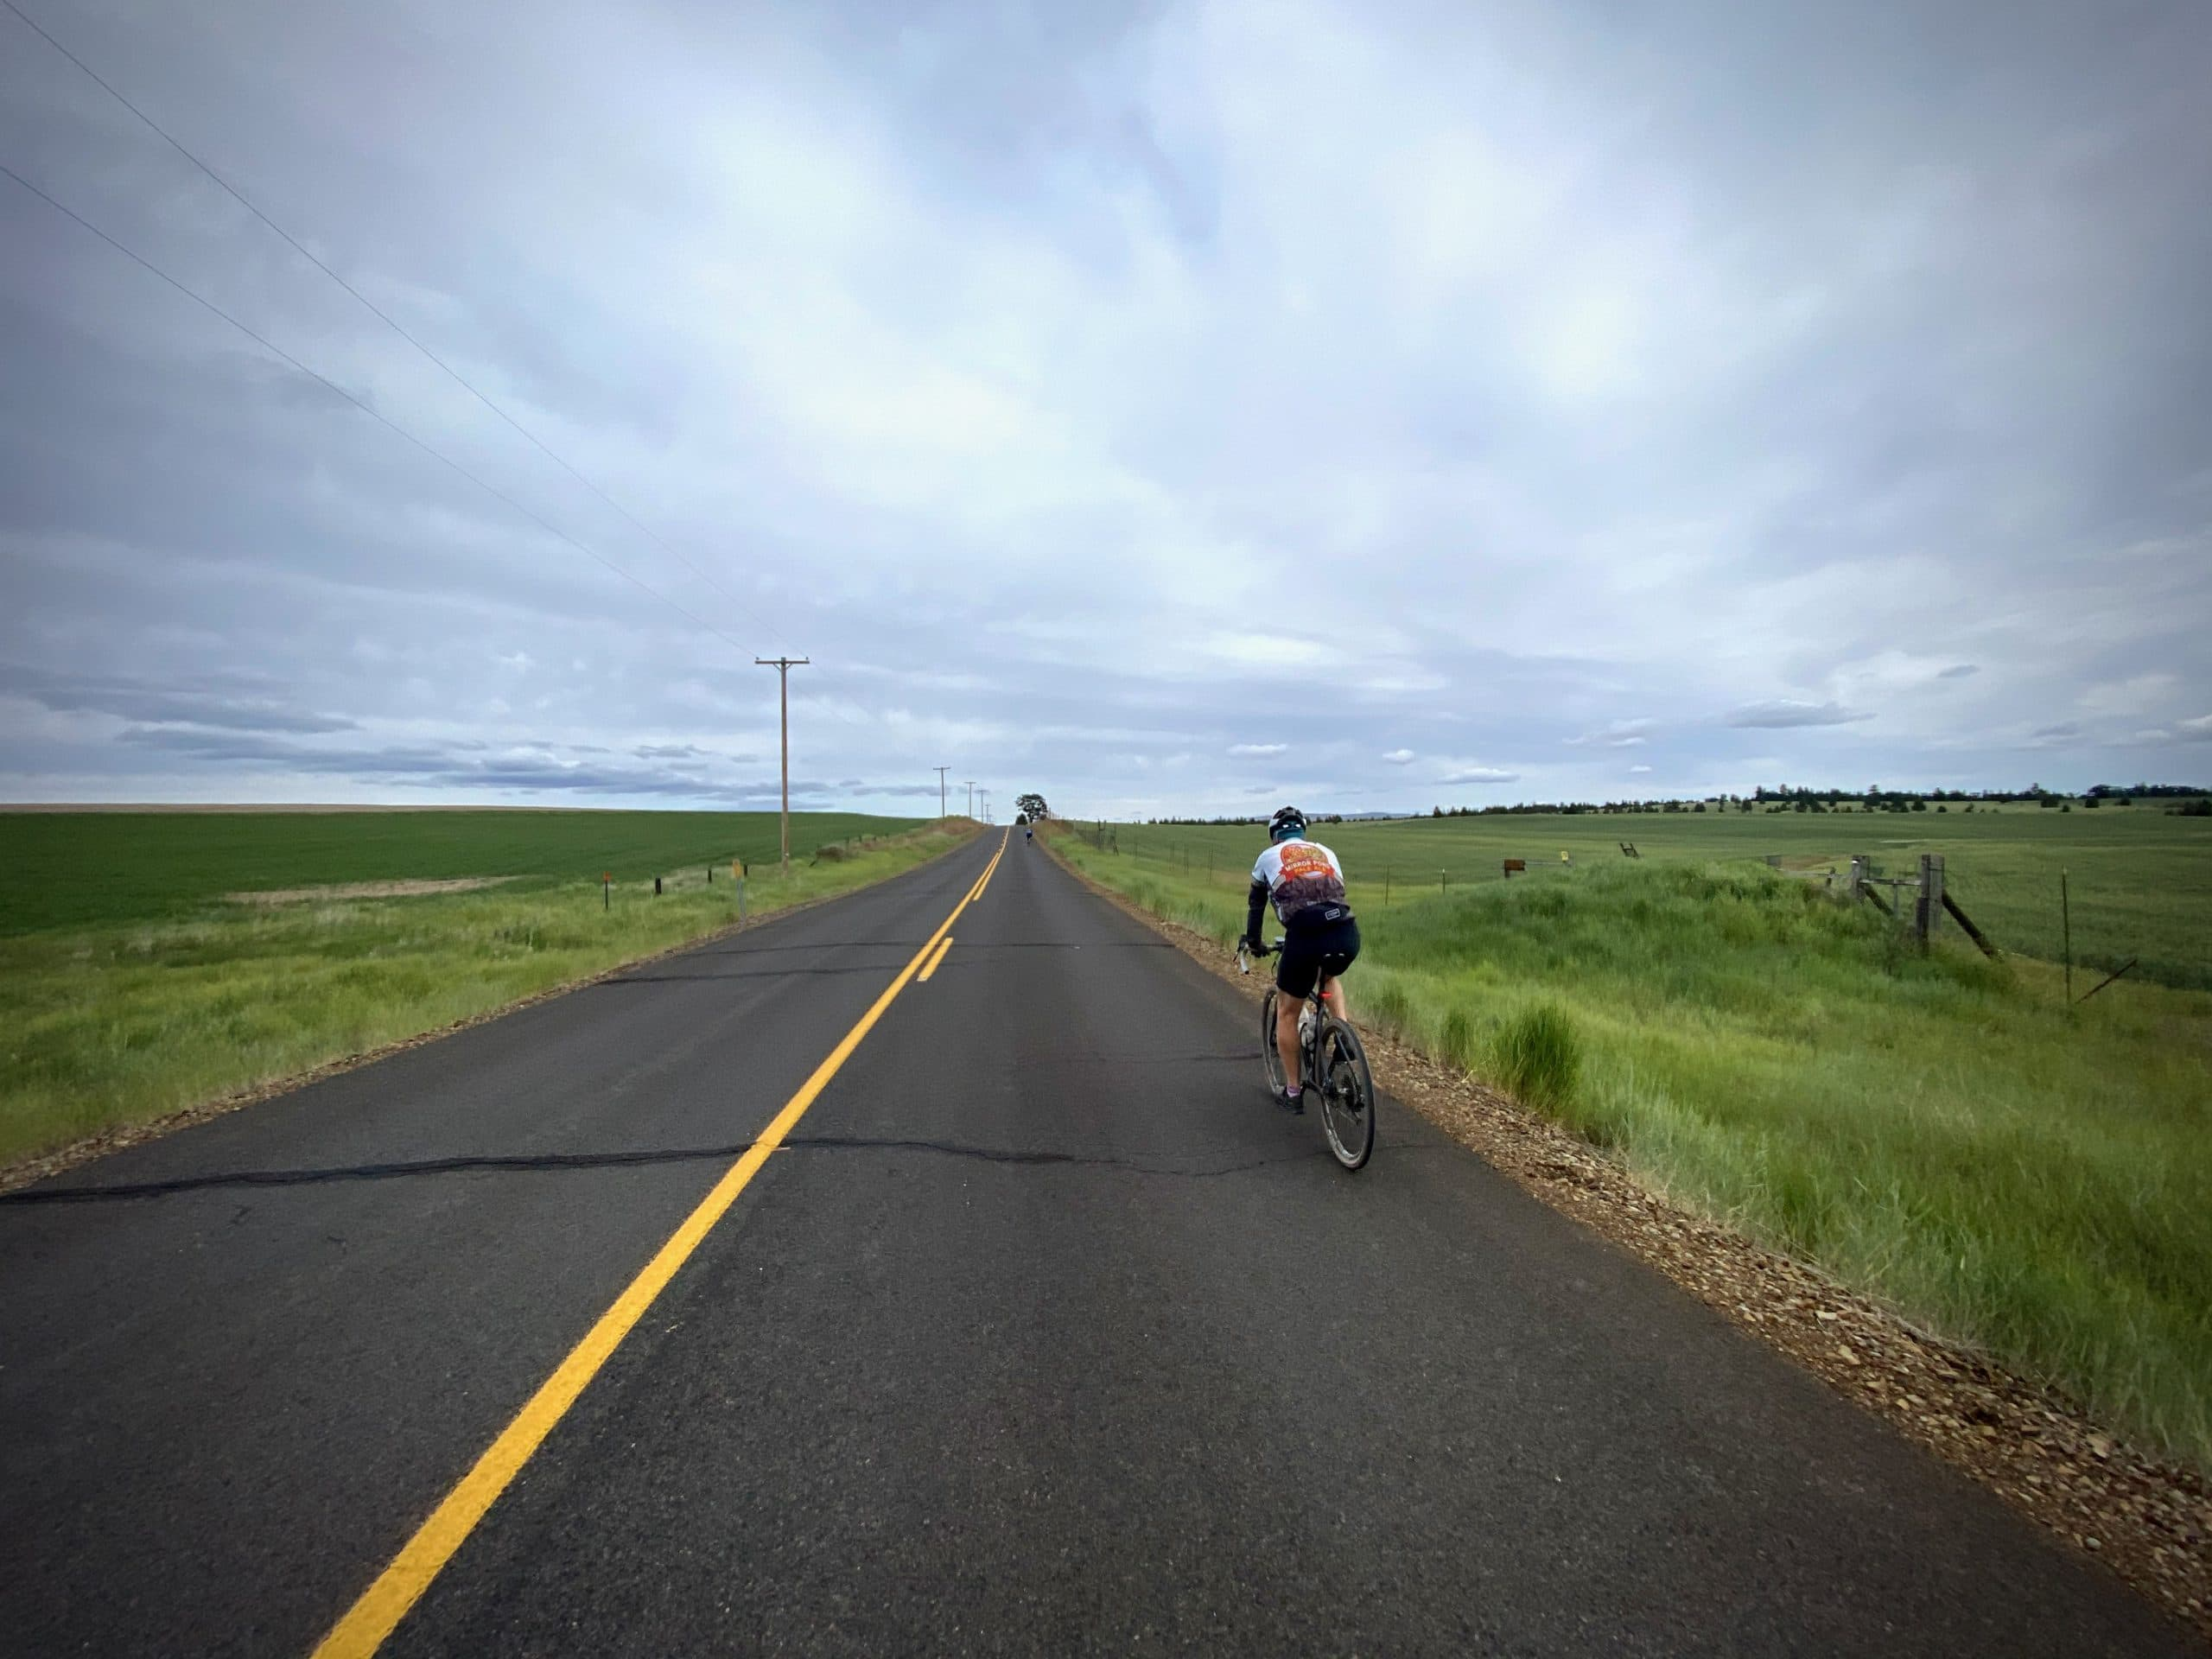 Cyclist on paved road with green fields near Friend, Oregon.